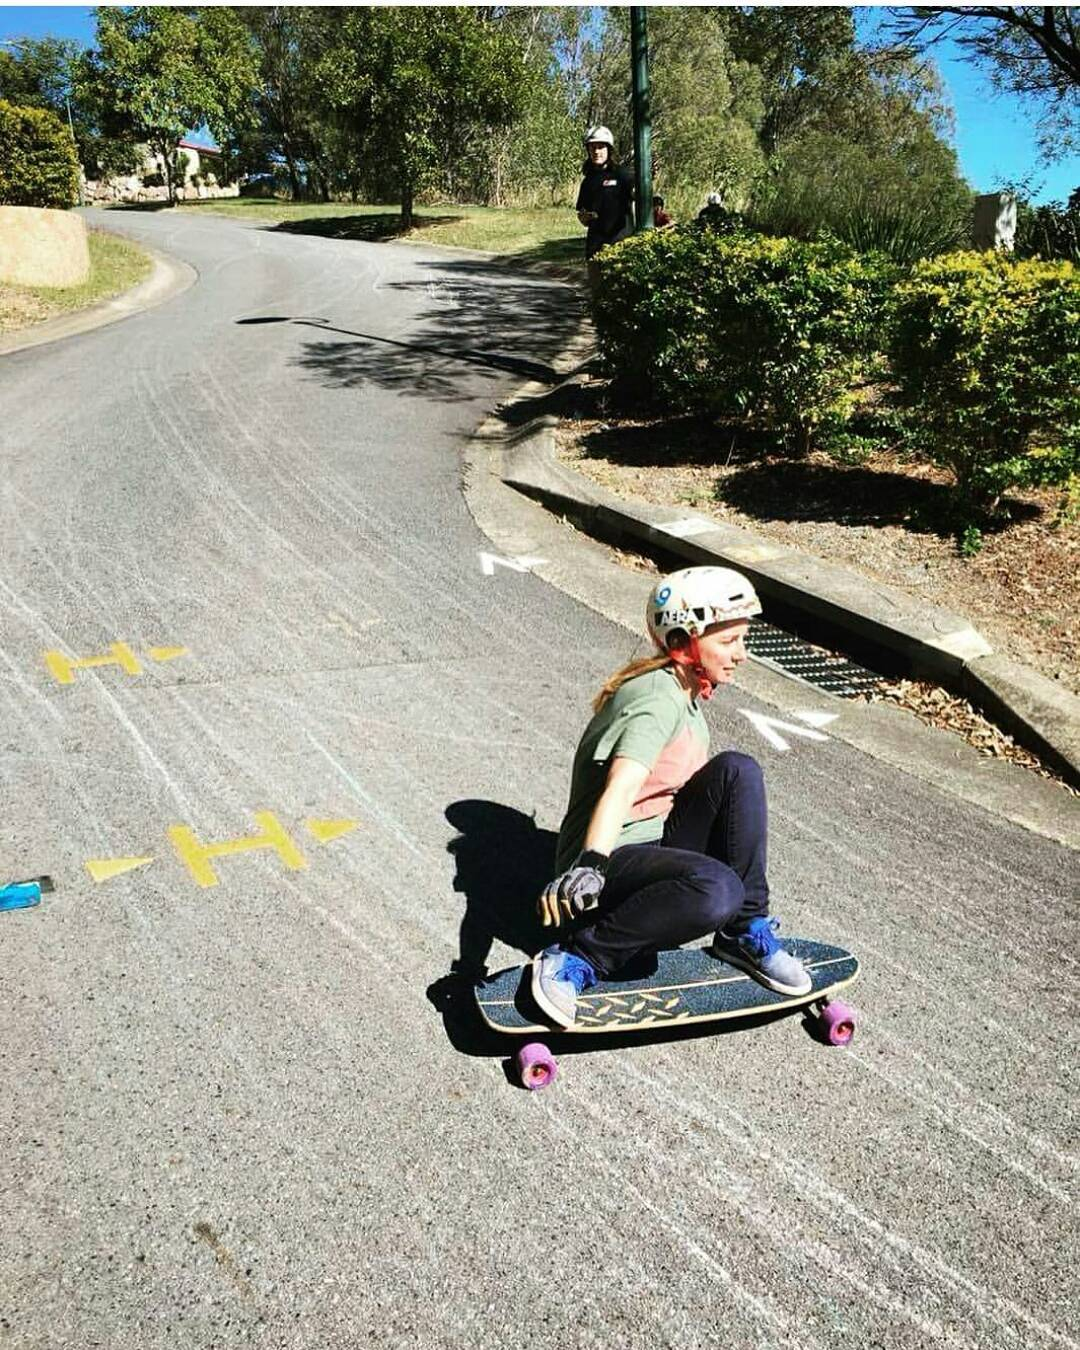 The always lovely #LoadedAmbassador @annanas_selina getting drifty with impeccable style on the golden roads of Australia.  #LoadedBoards #Truncated #Tesseract #Orangatang